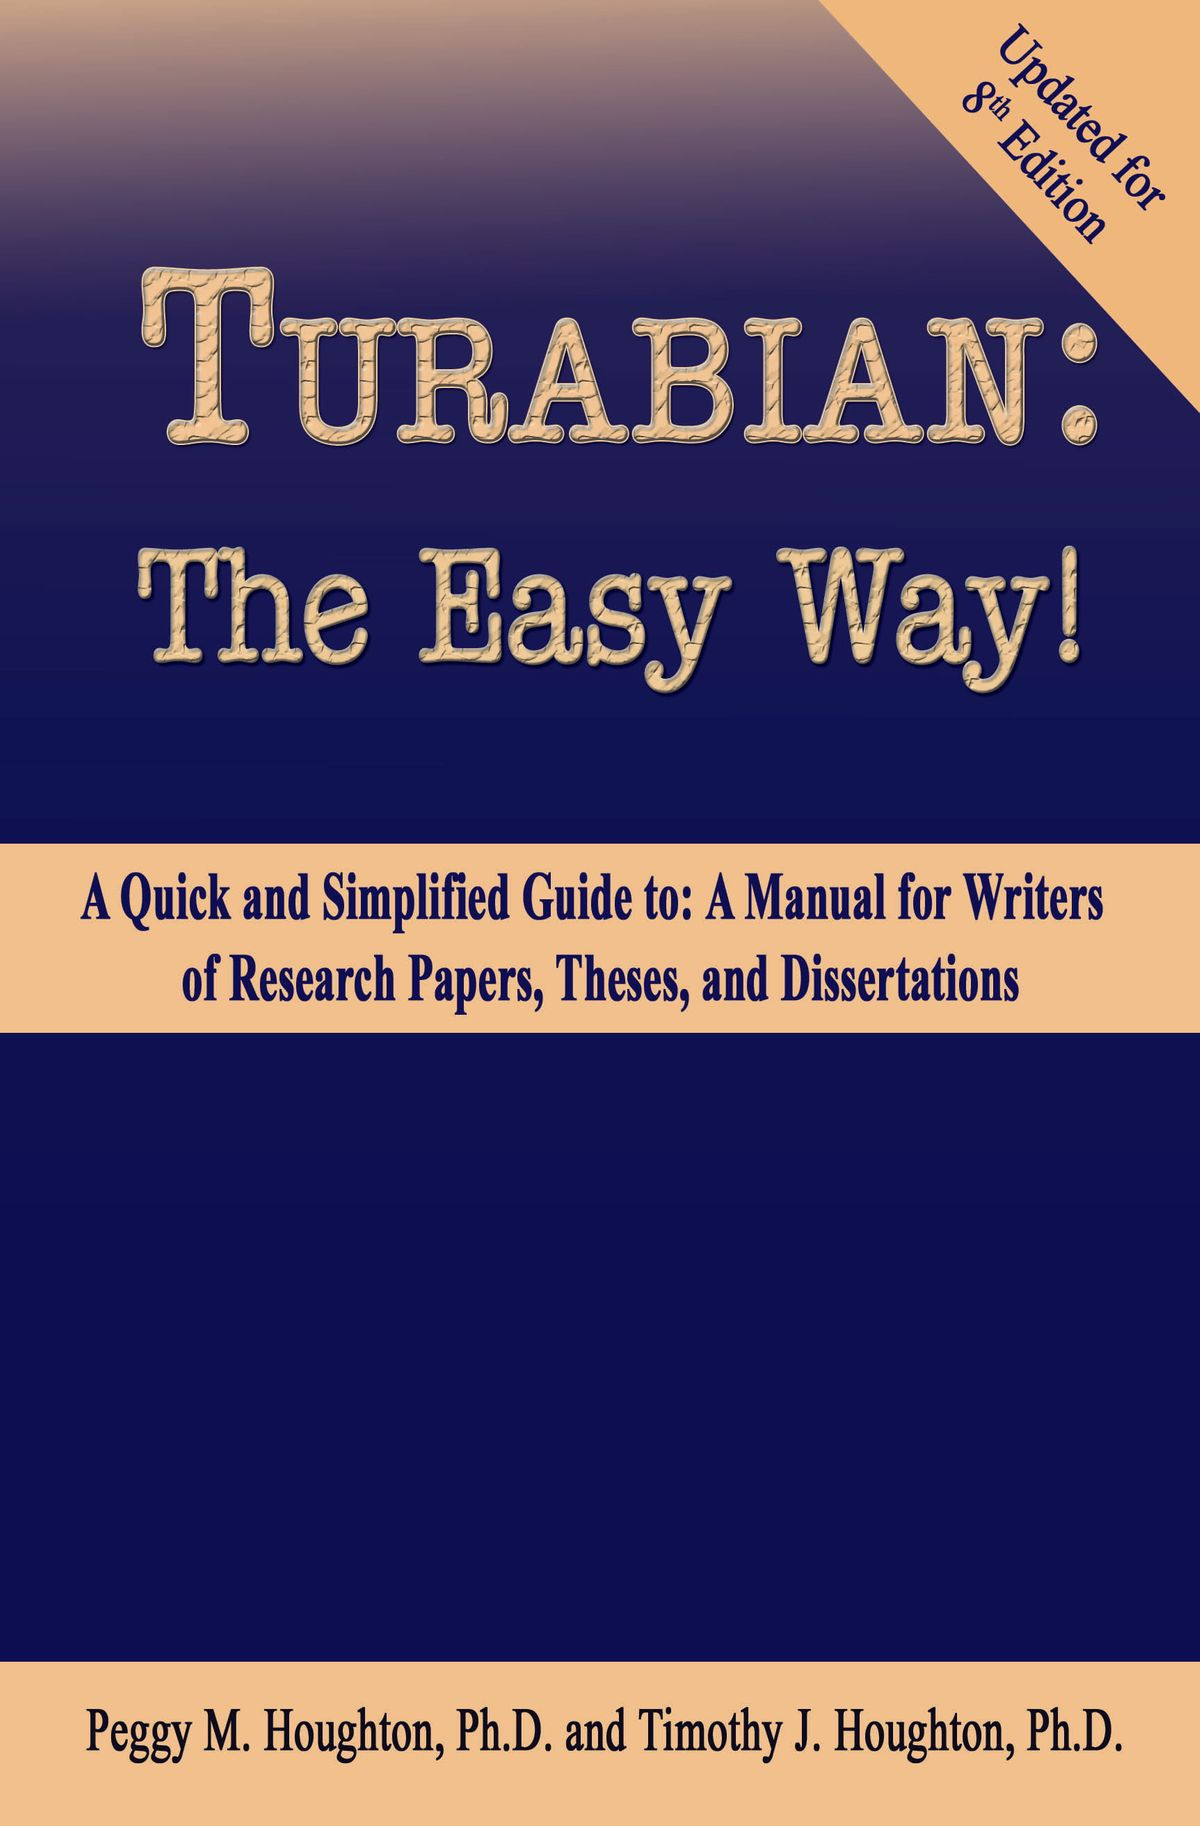 009 Manual For Writers Of Researchs Theses And Dissertations 8th Edition Turabian The Easy Way Staggering A Research Papers Pdf Full